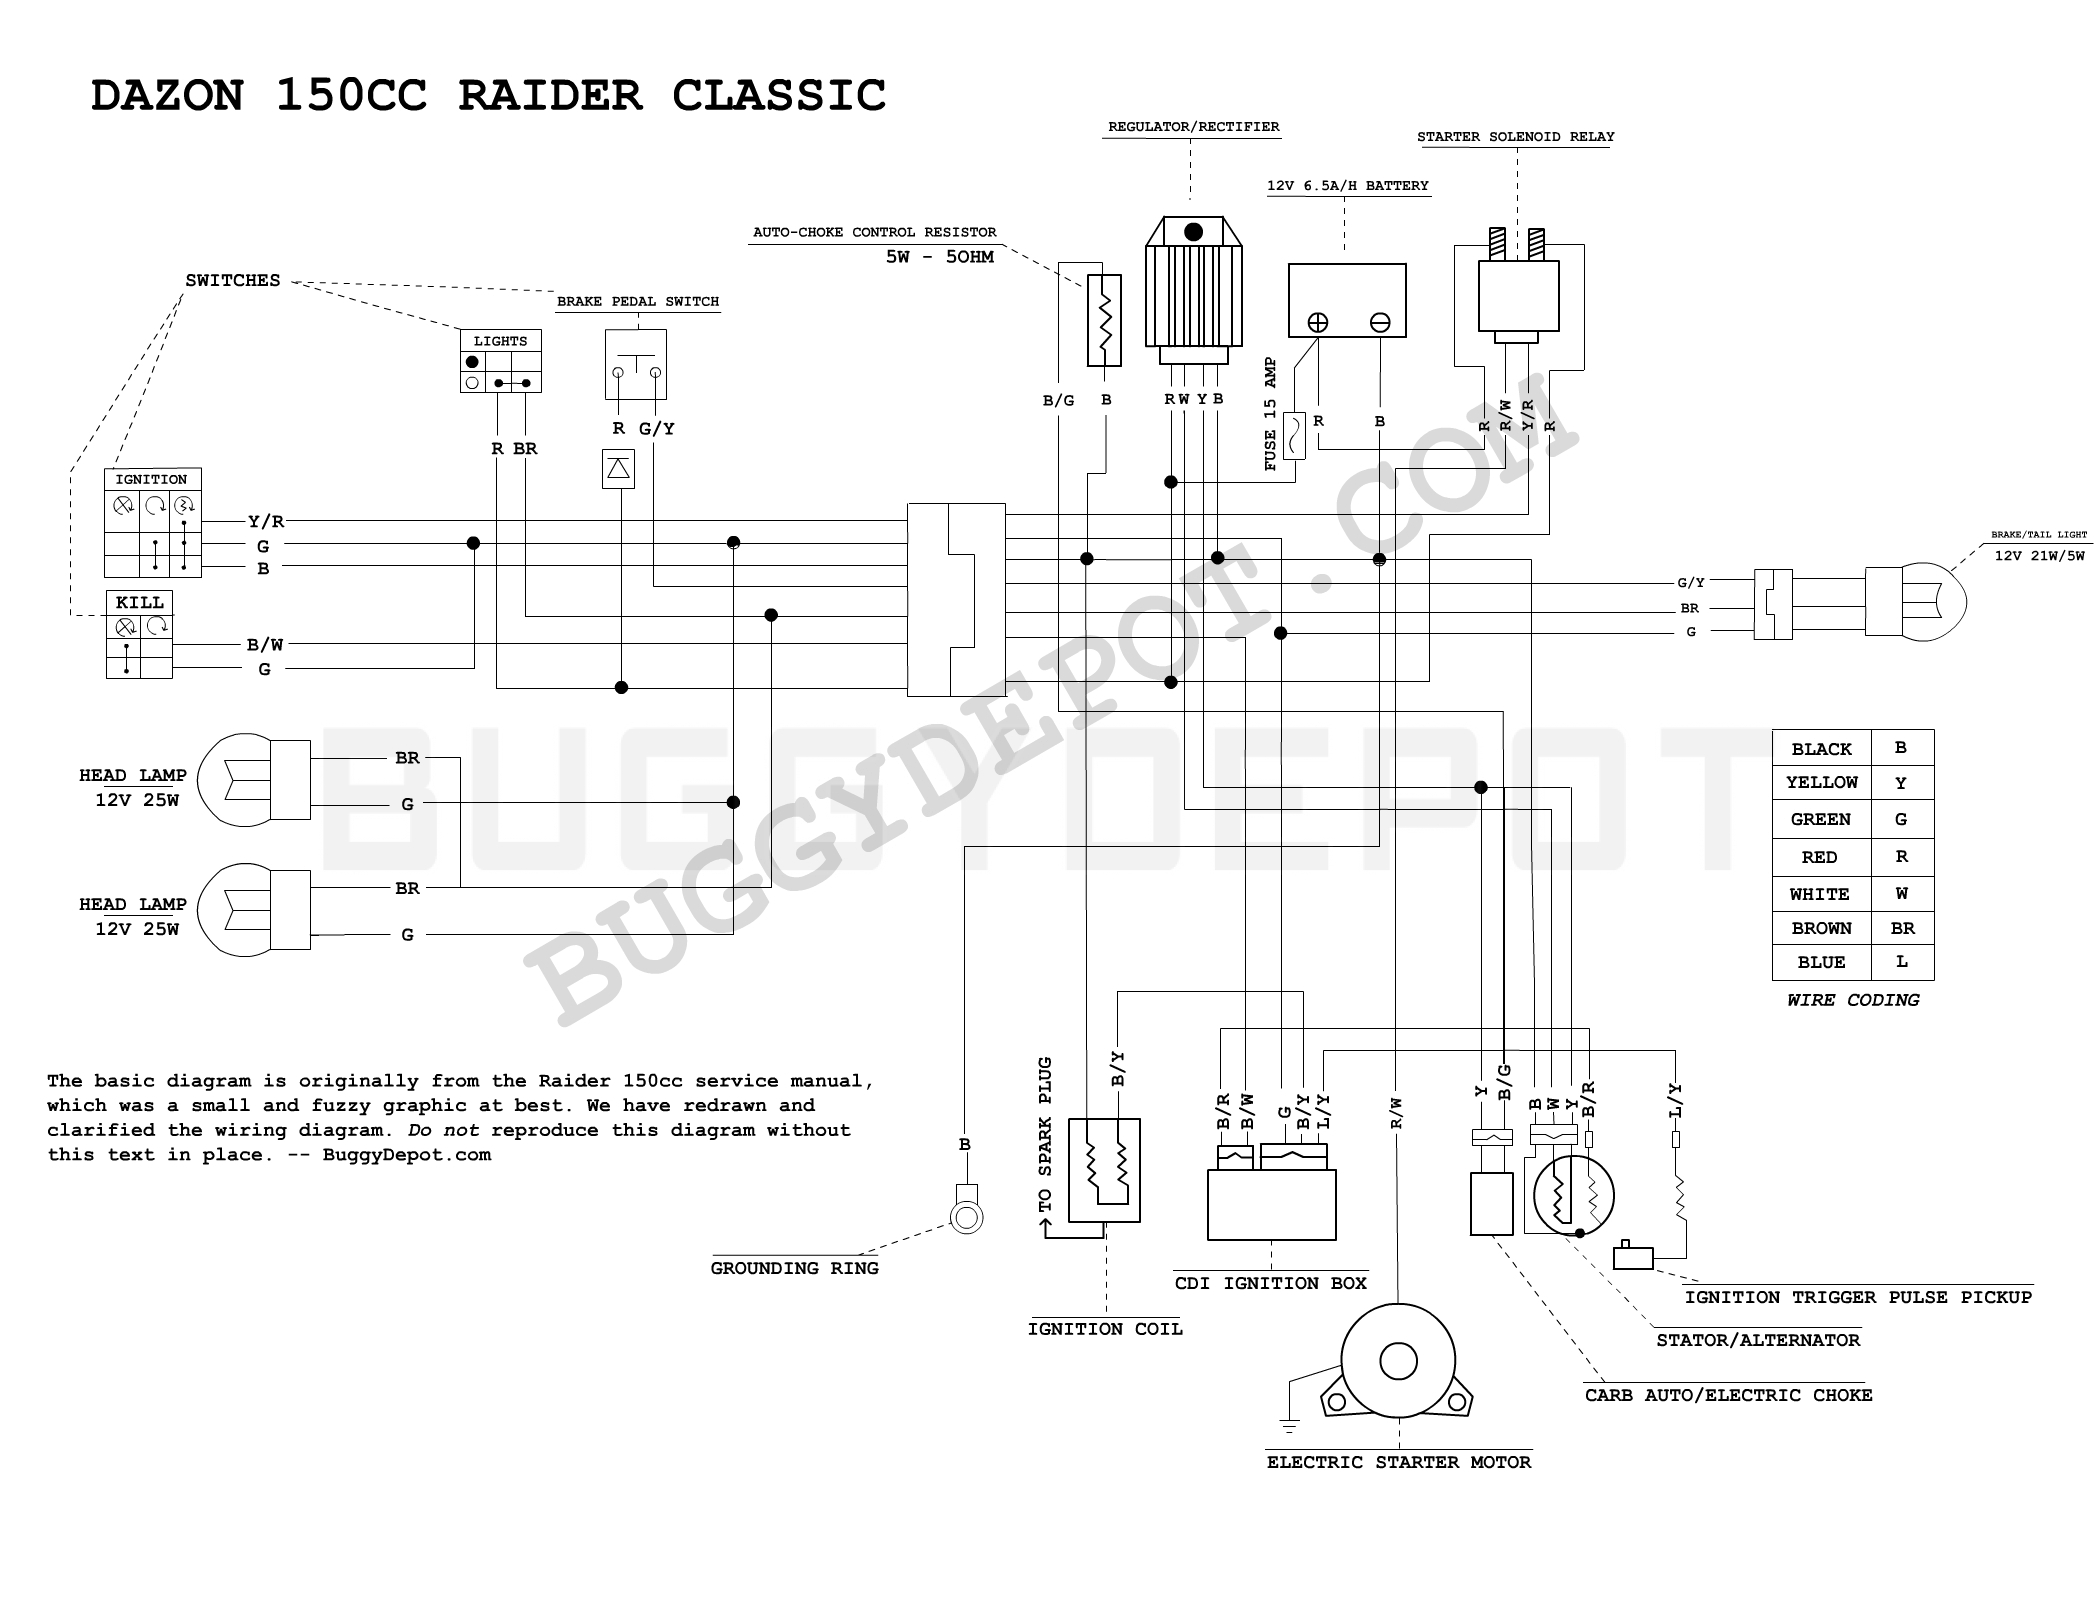 article_33_1278205207 dazon raider classic wiring diagram buggy depot technical center sunl go kart wiring diagram at reclaimingppi.co